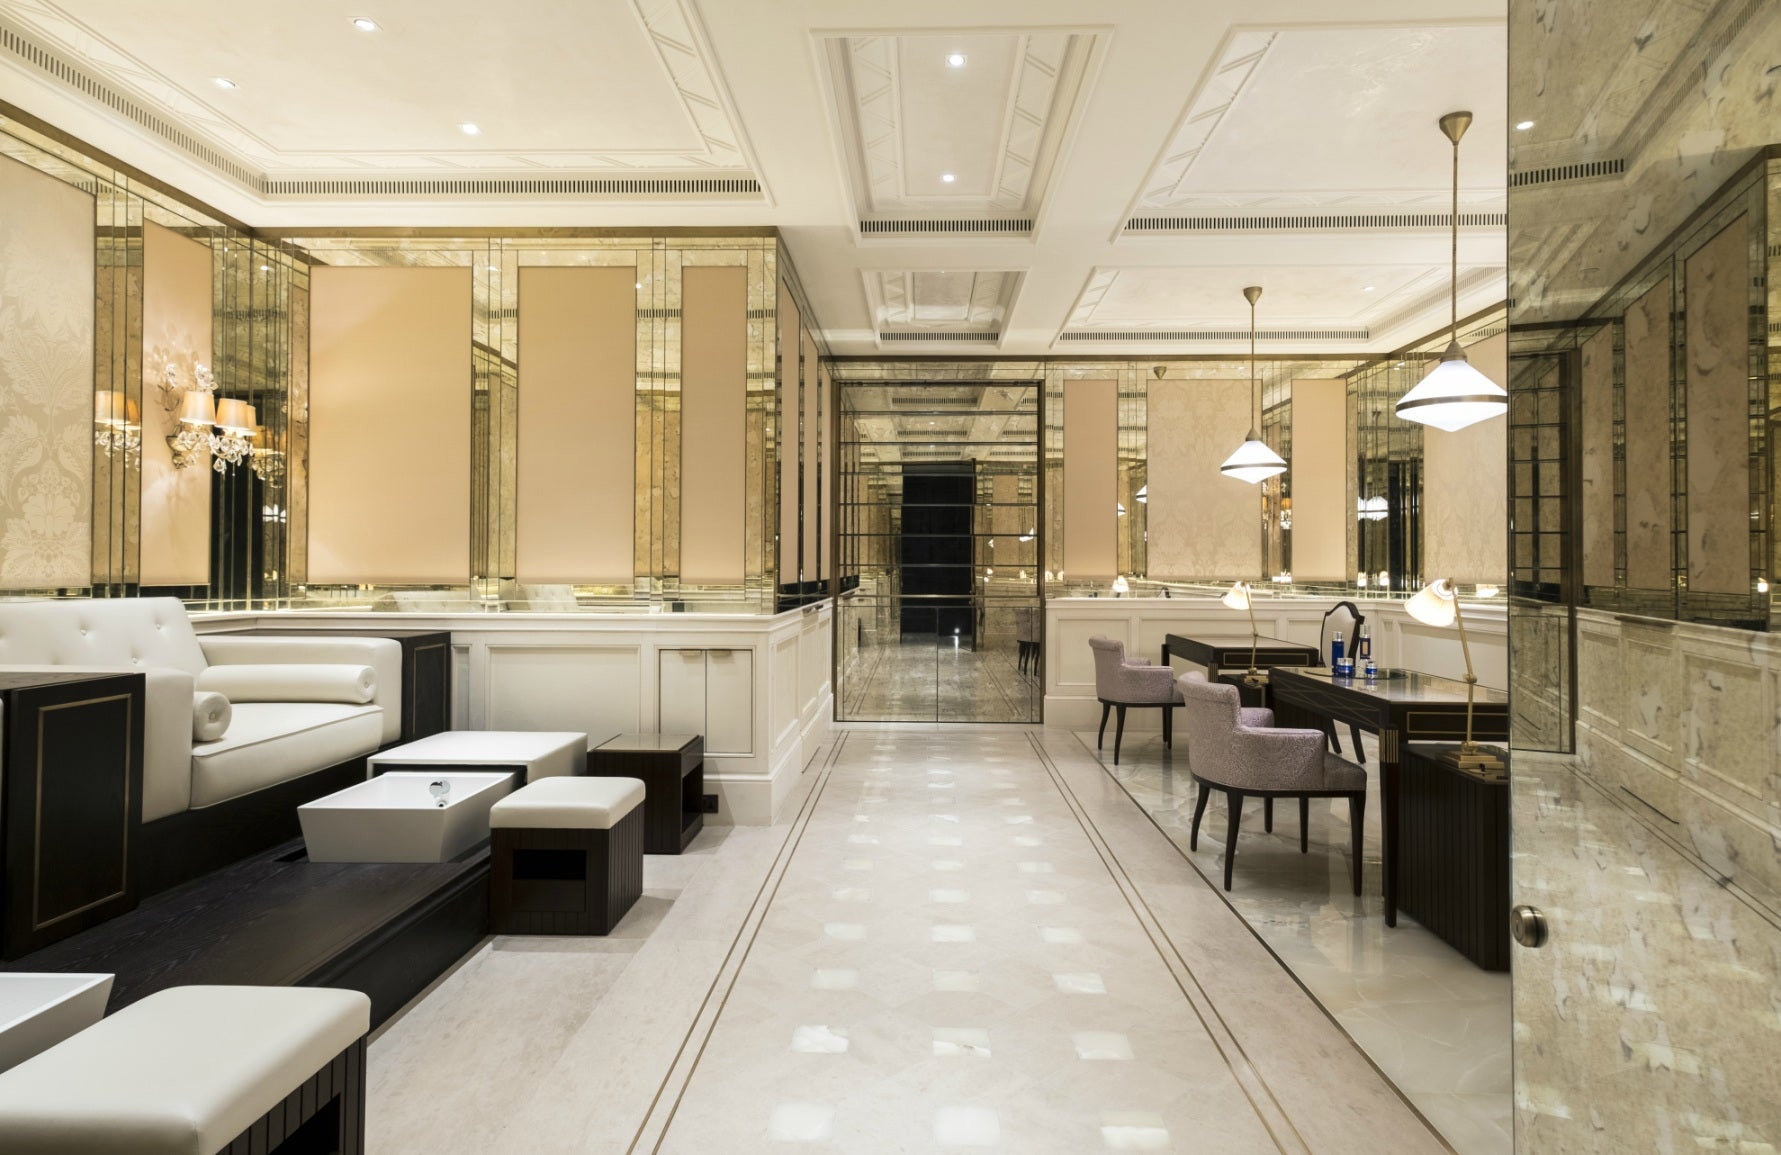 Best Spa In London | The Lanesborough Club & Spa | London Spa Hotel | Read more in The Luxurist at LuxDeco.com